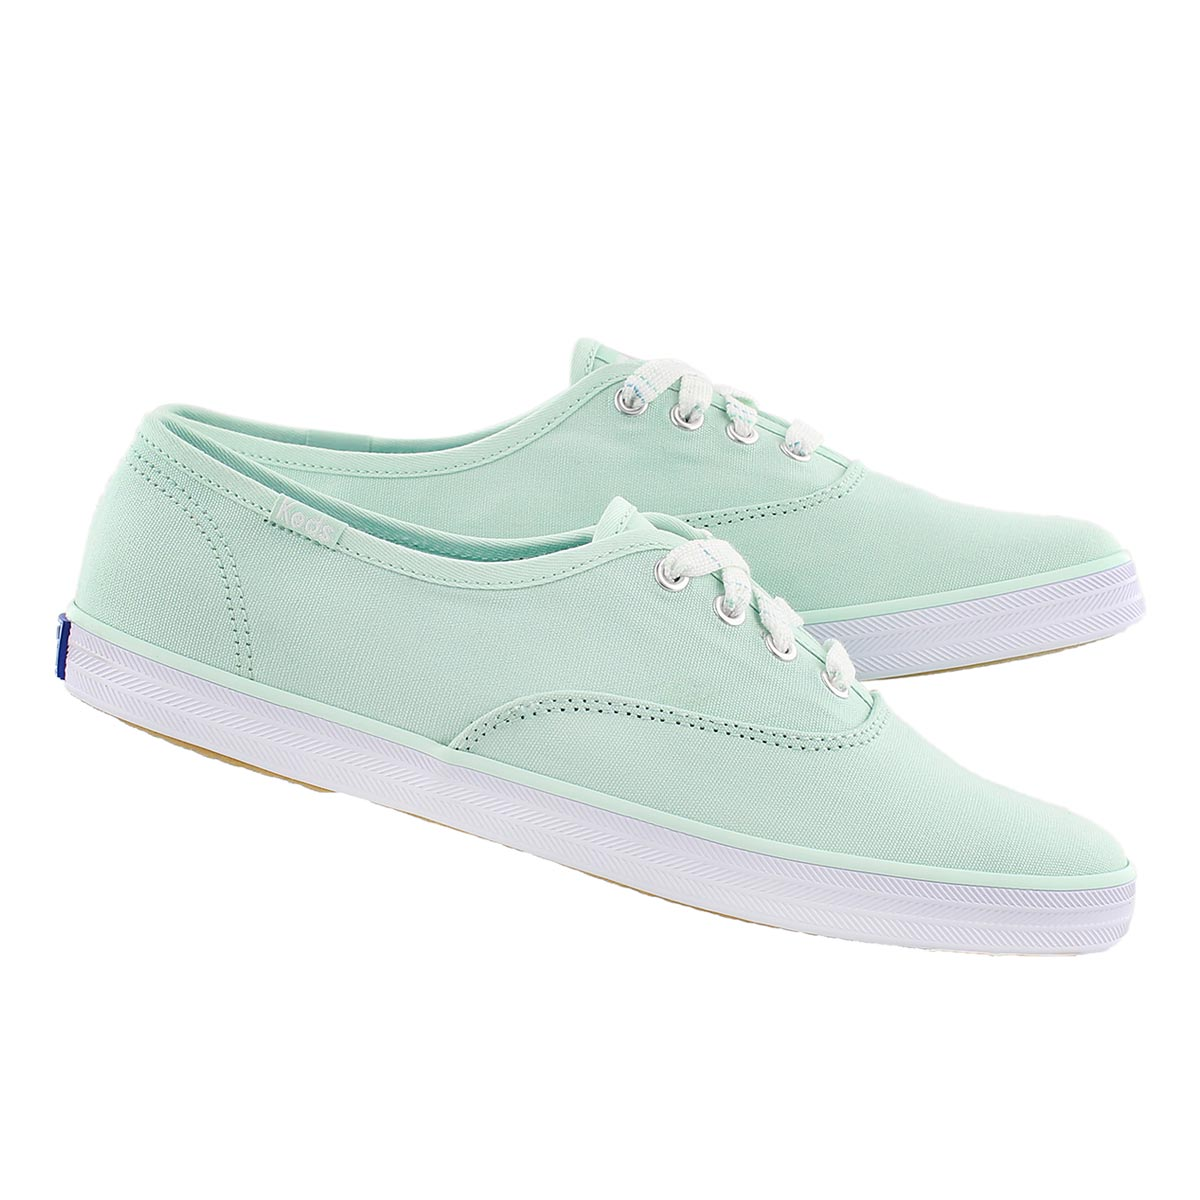 Lds Champion brook green canvas sneaker